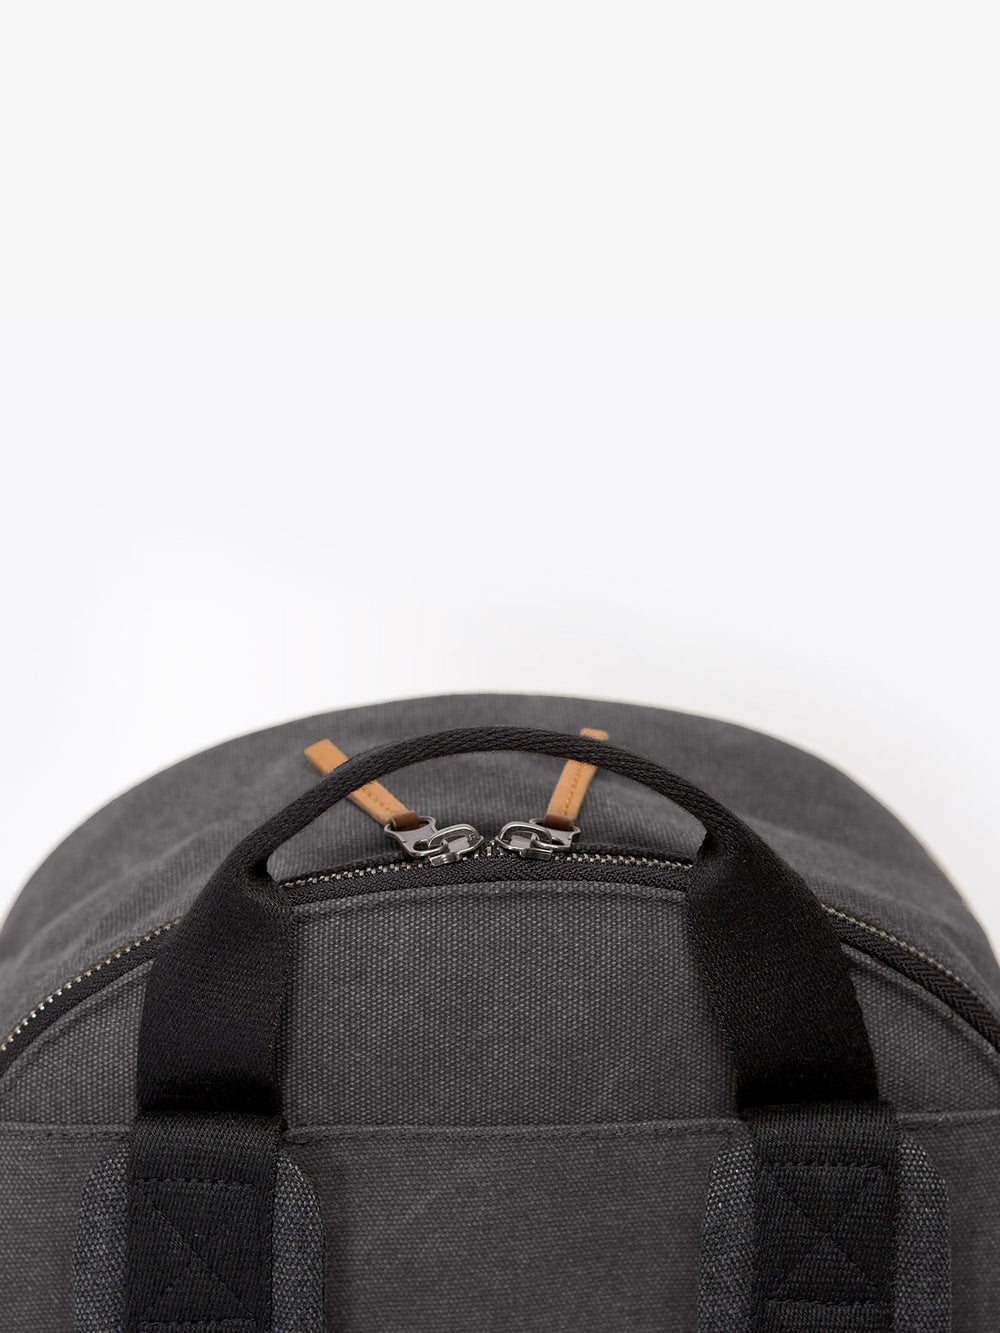 Minimalist Marvin urban backpack top zipped access.